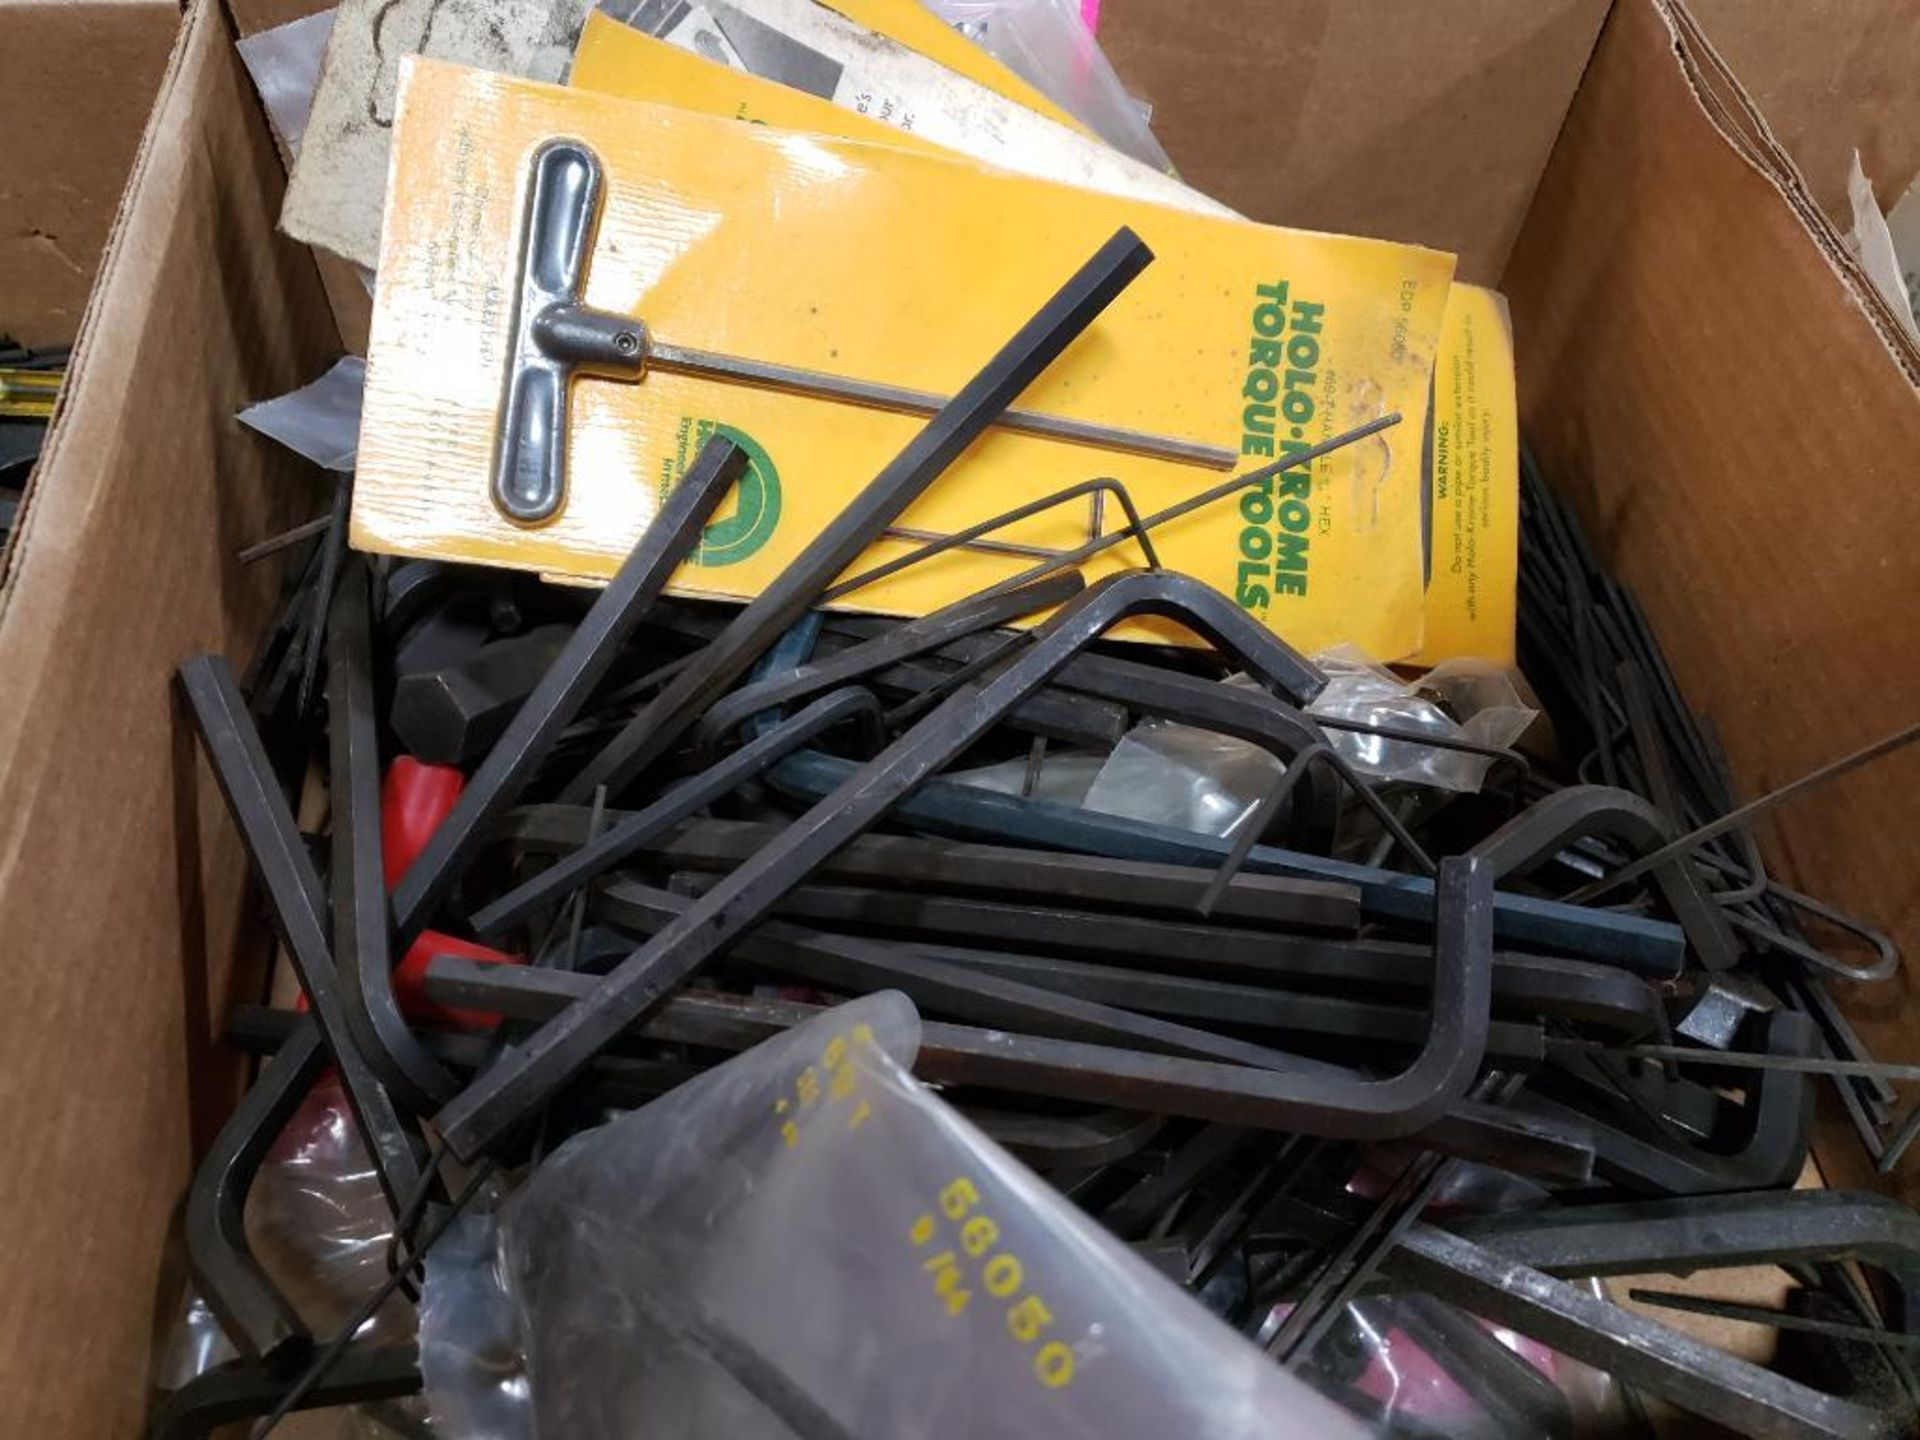 Large Qty of assorted allen wrenches. Holo-Krome and brands. - Image 2 of 2